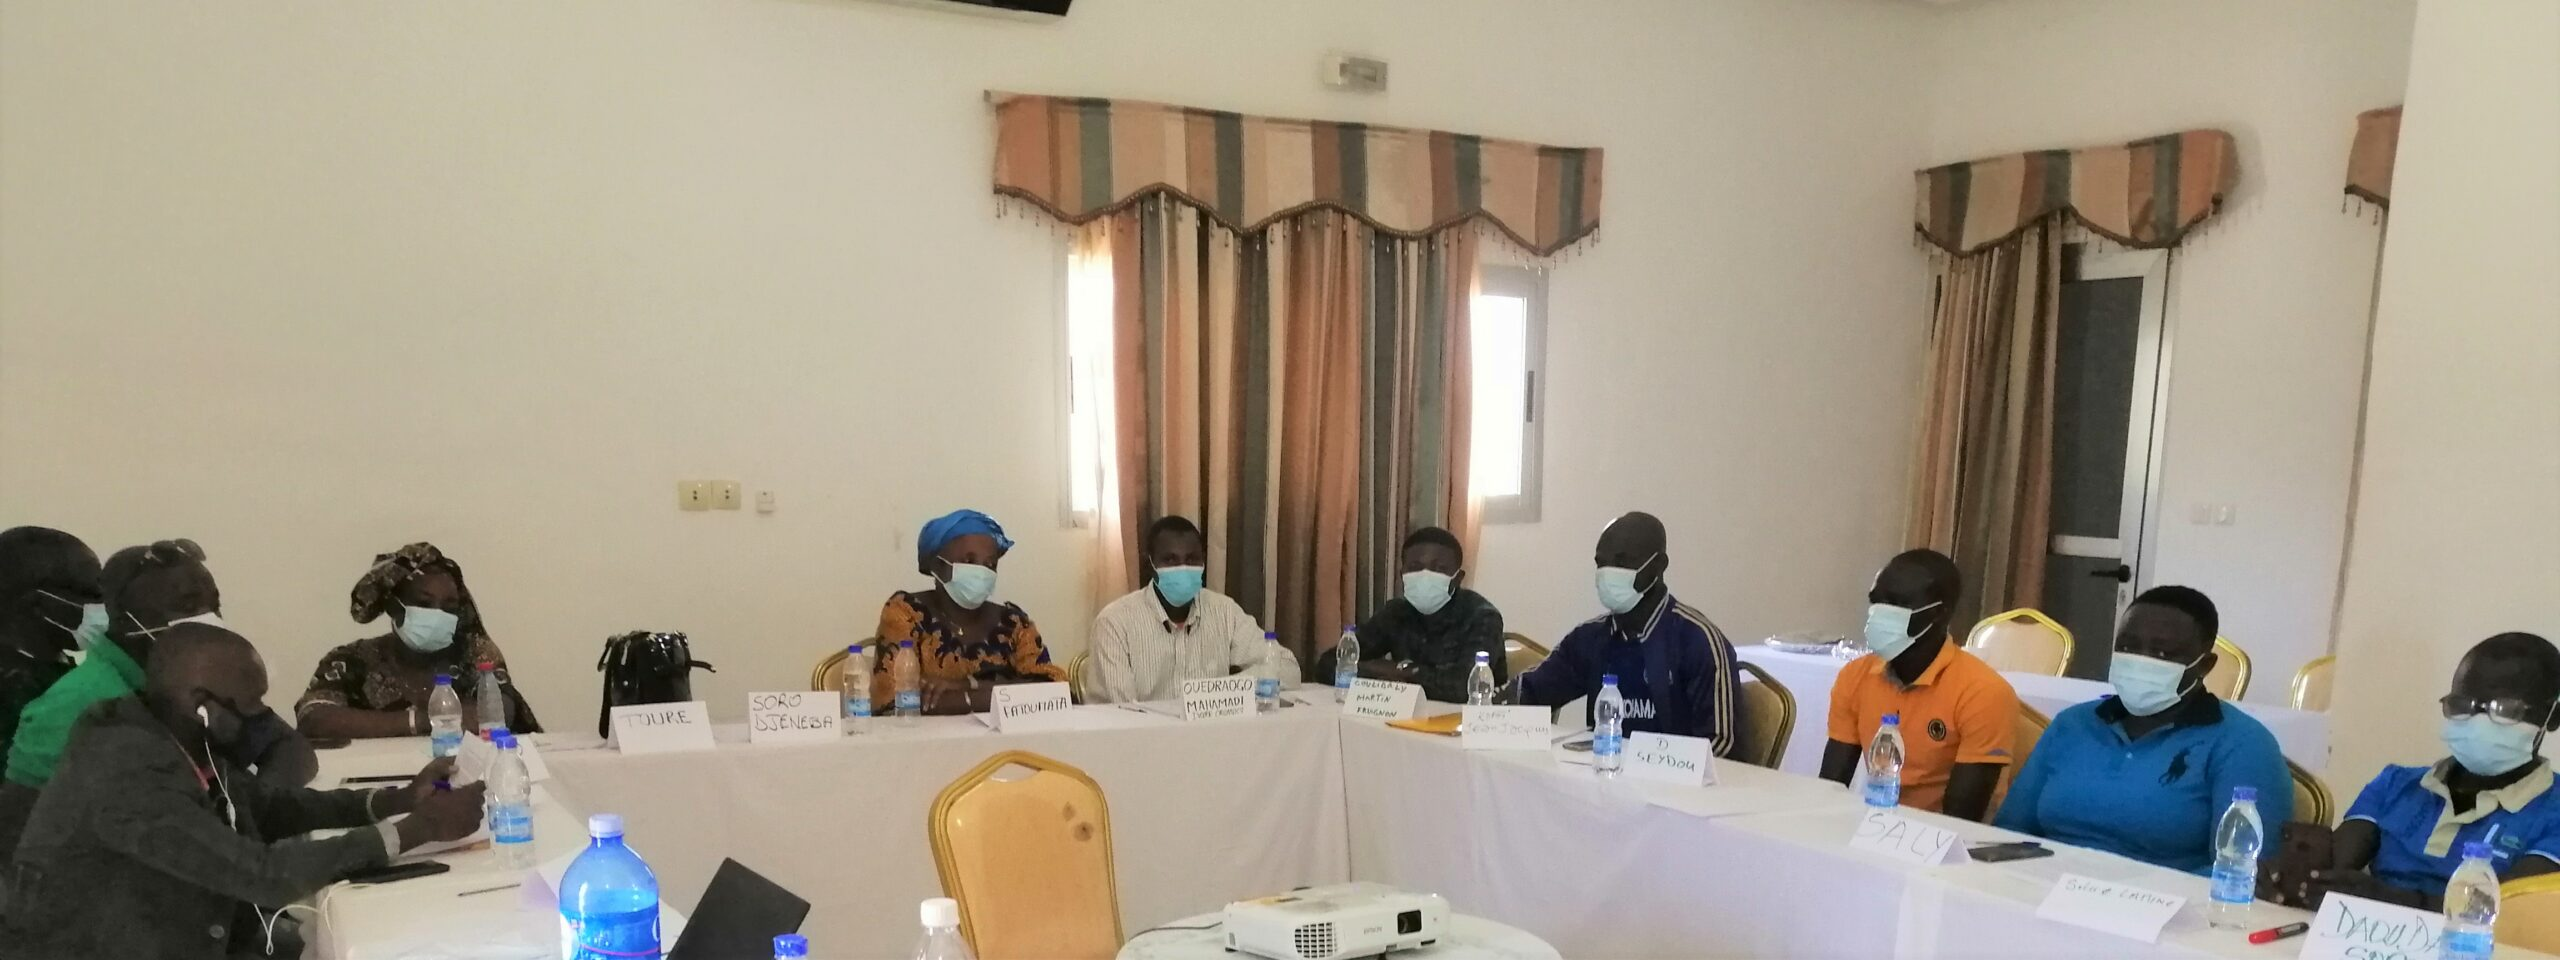 GROUP TRAINING ON INTEGRATED MANAGEMENT FOR FRUIT FLY CONTROL IN CÔTE D'IVOIRE'S MANGO SECTOR